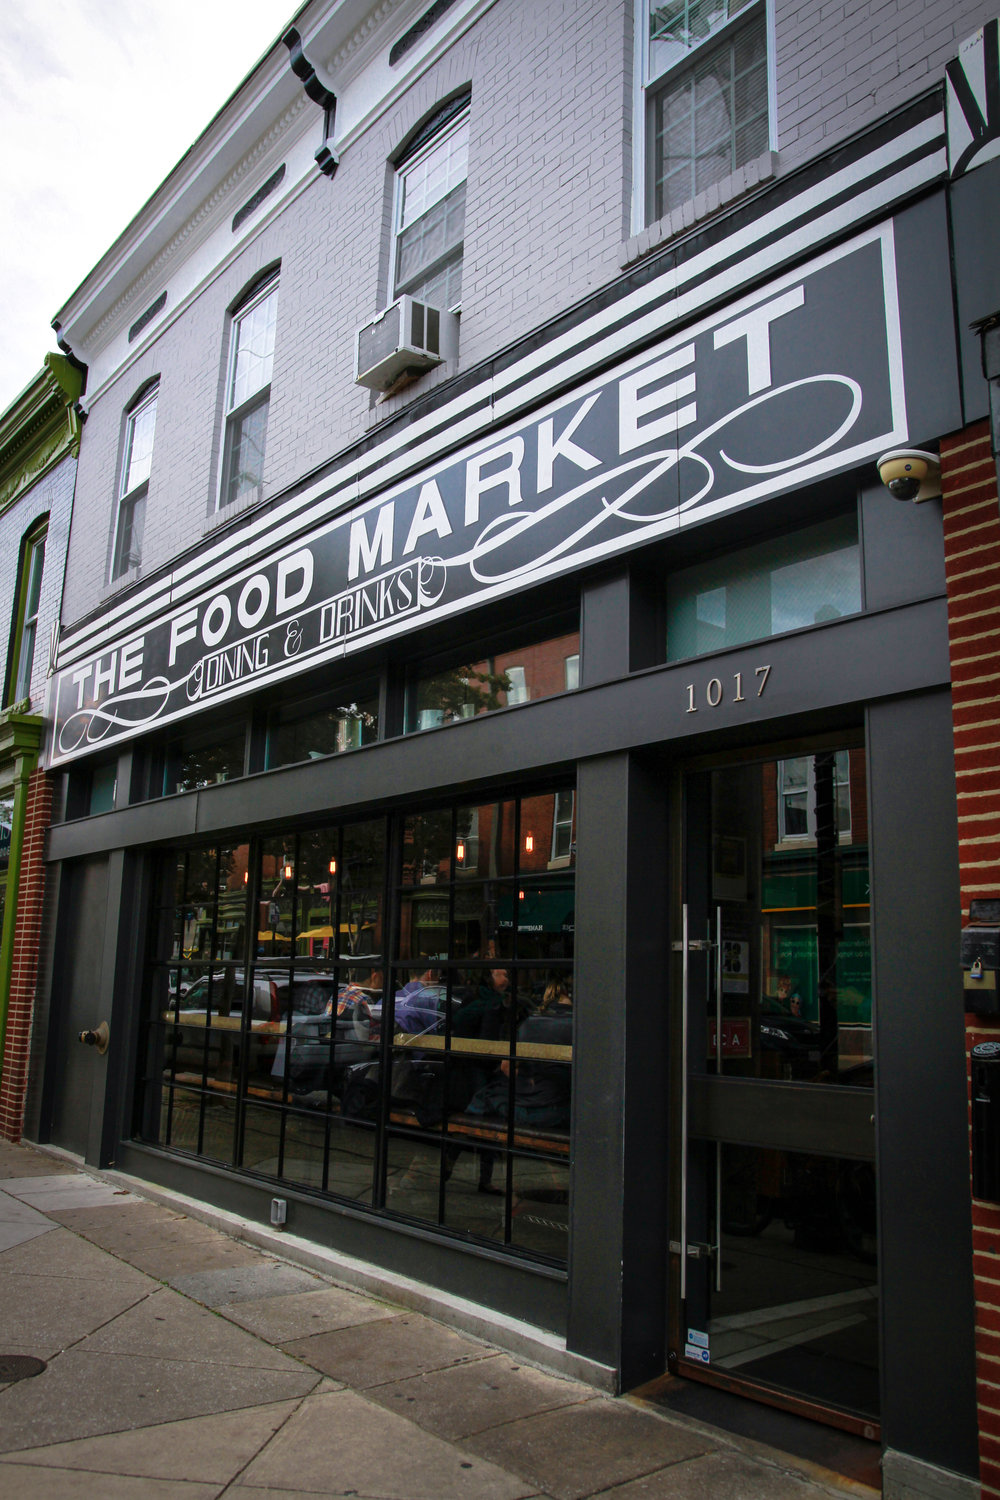 The Food Market | Restaurant | Hampden Baltimore Maryland | Travel Blog & Tips | Maral Noori Photography | Travel Blogger and Photographer